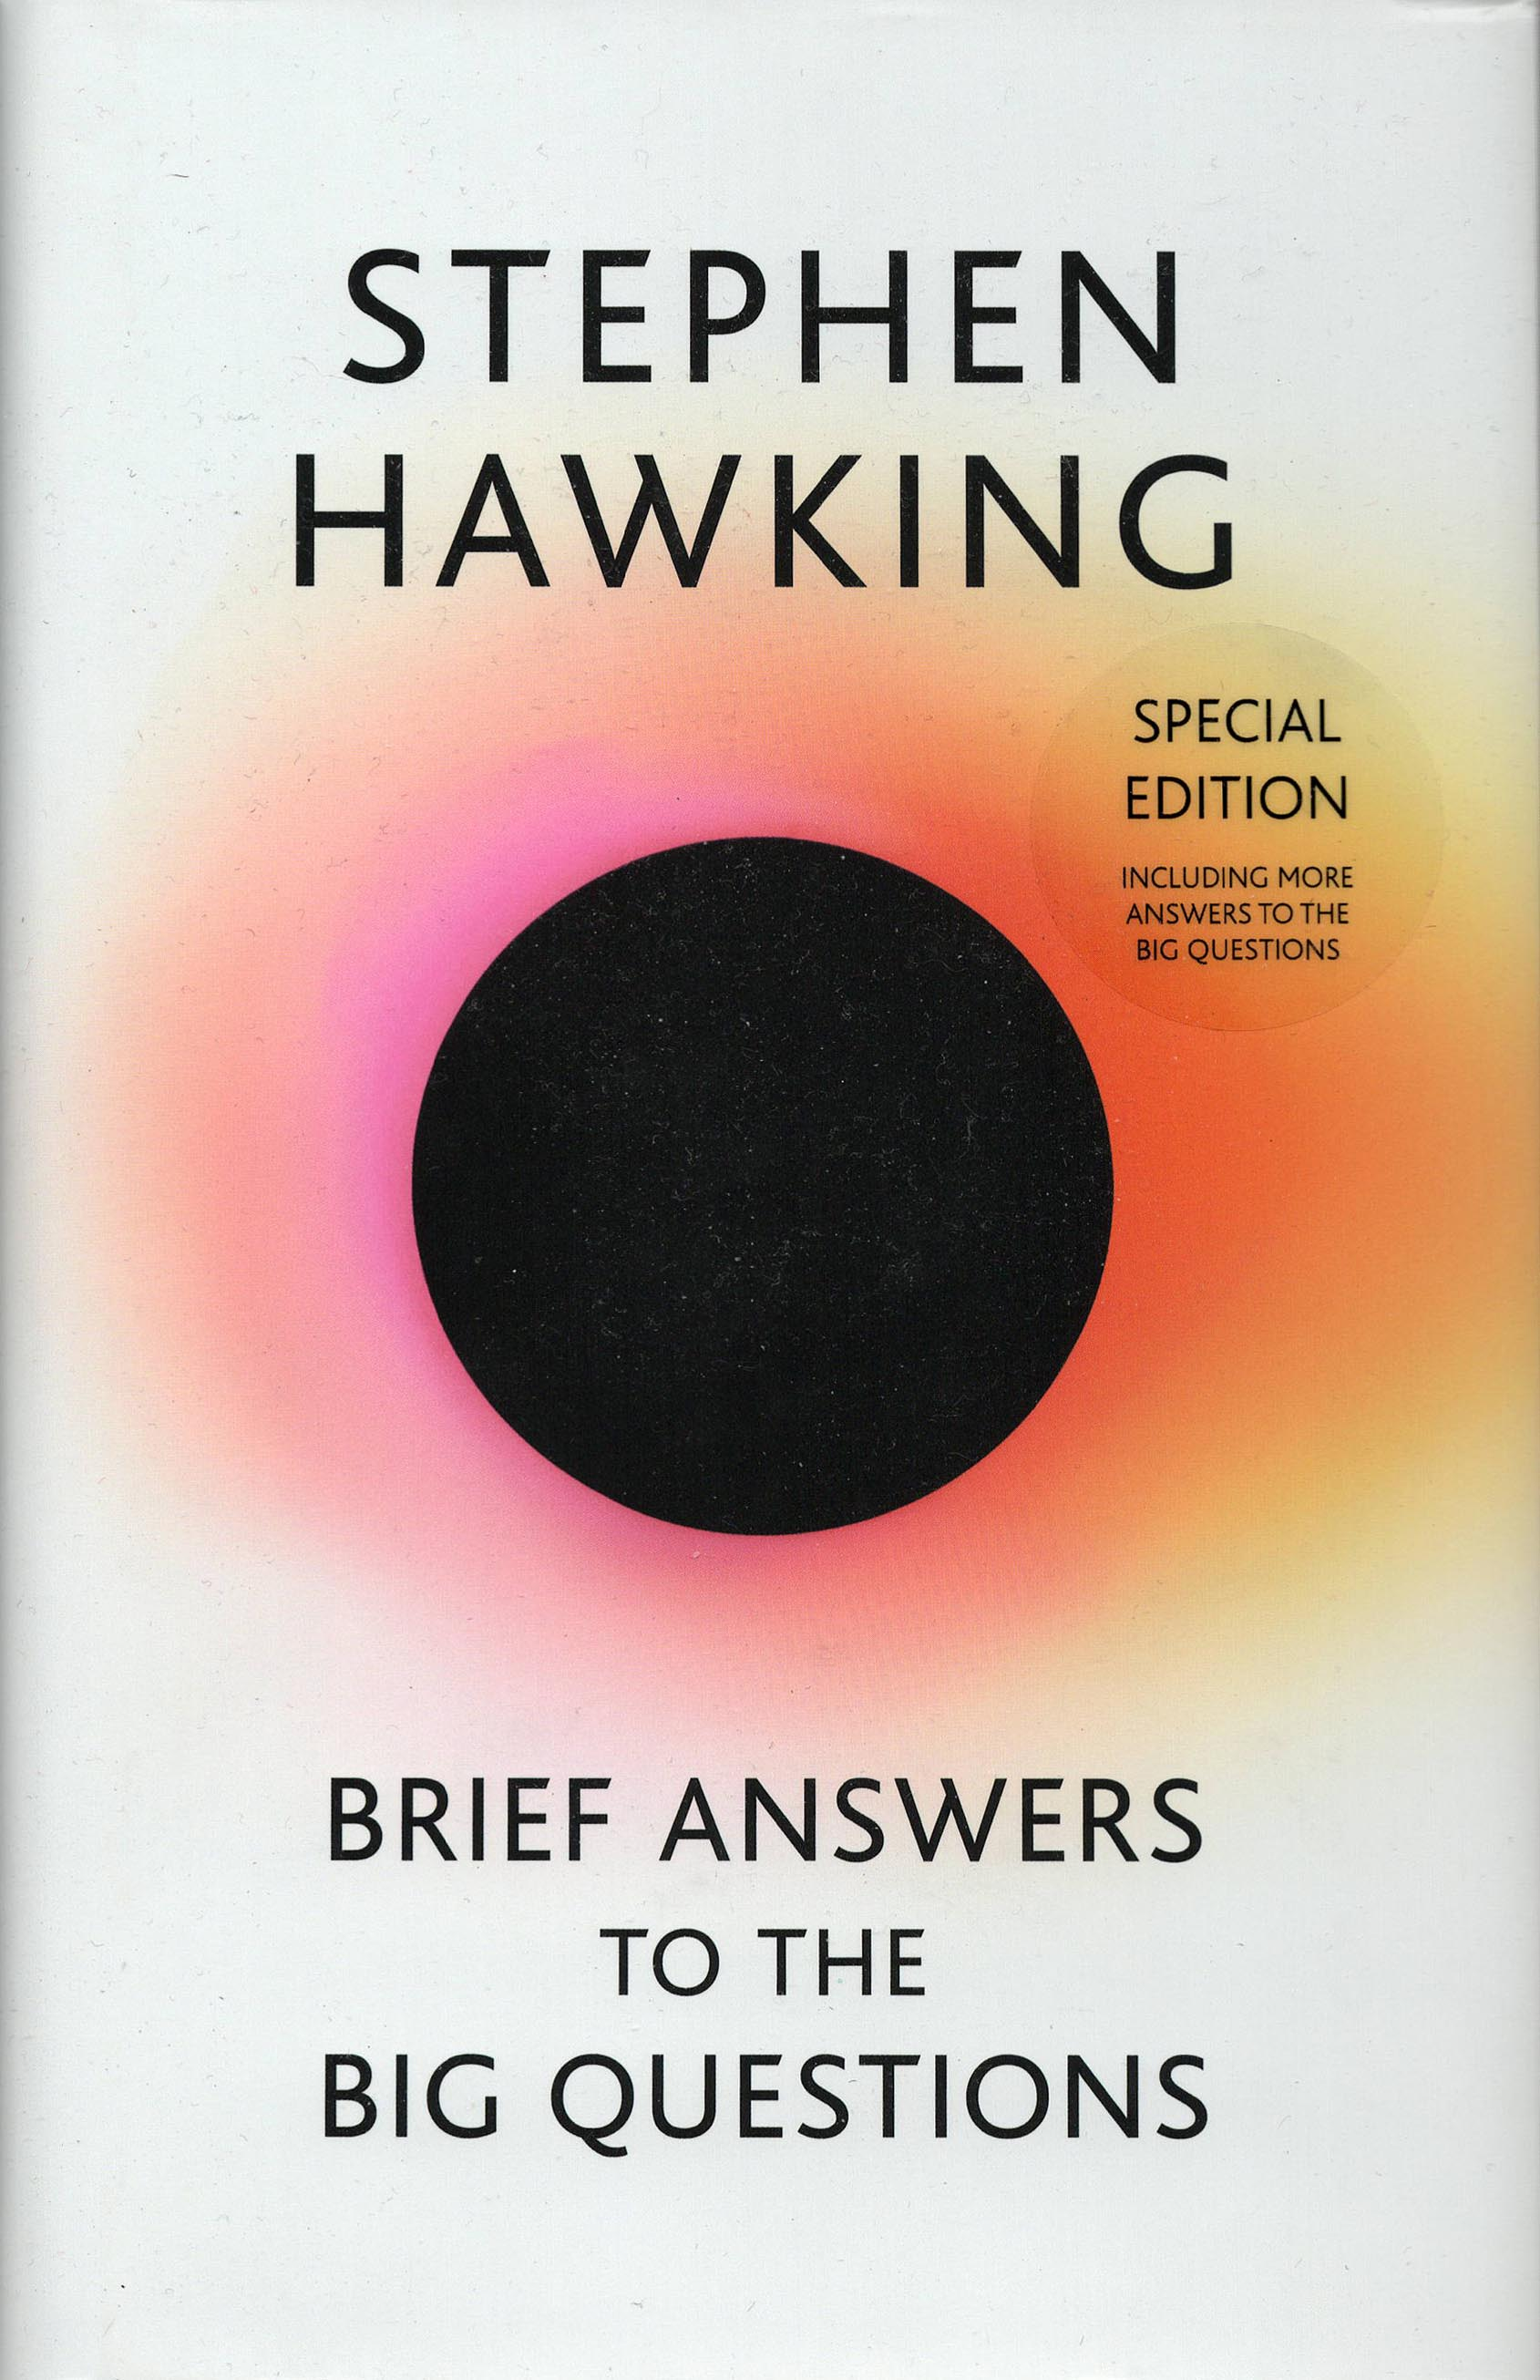 Stephen Hawking Brief answers to Big Questions 1.jpeg